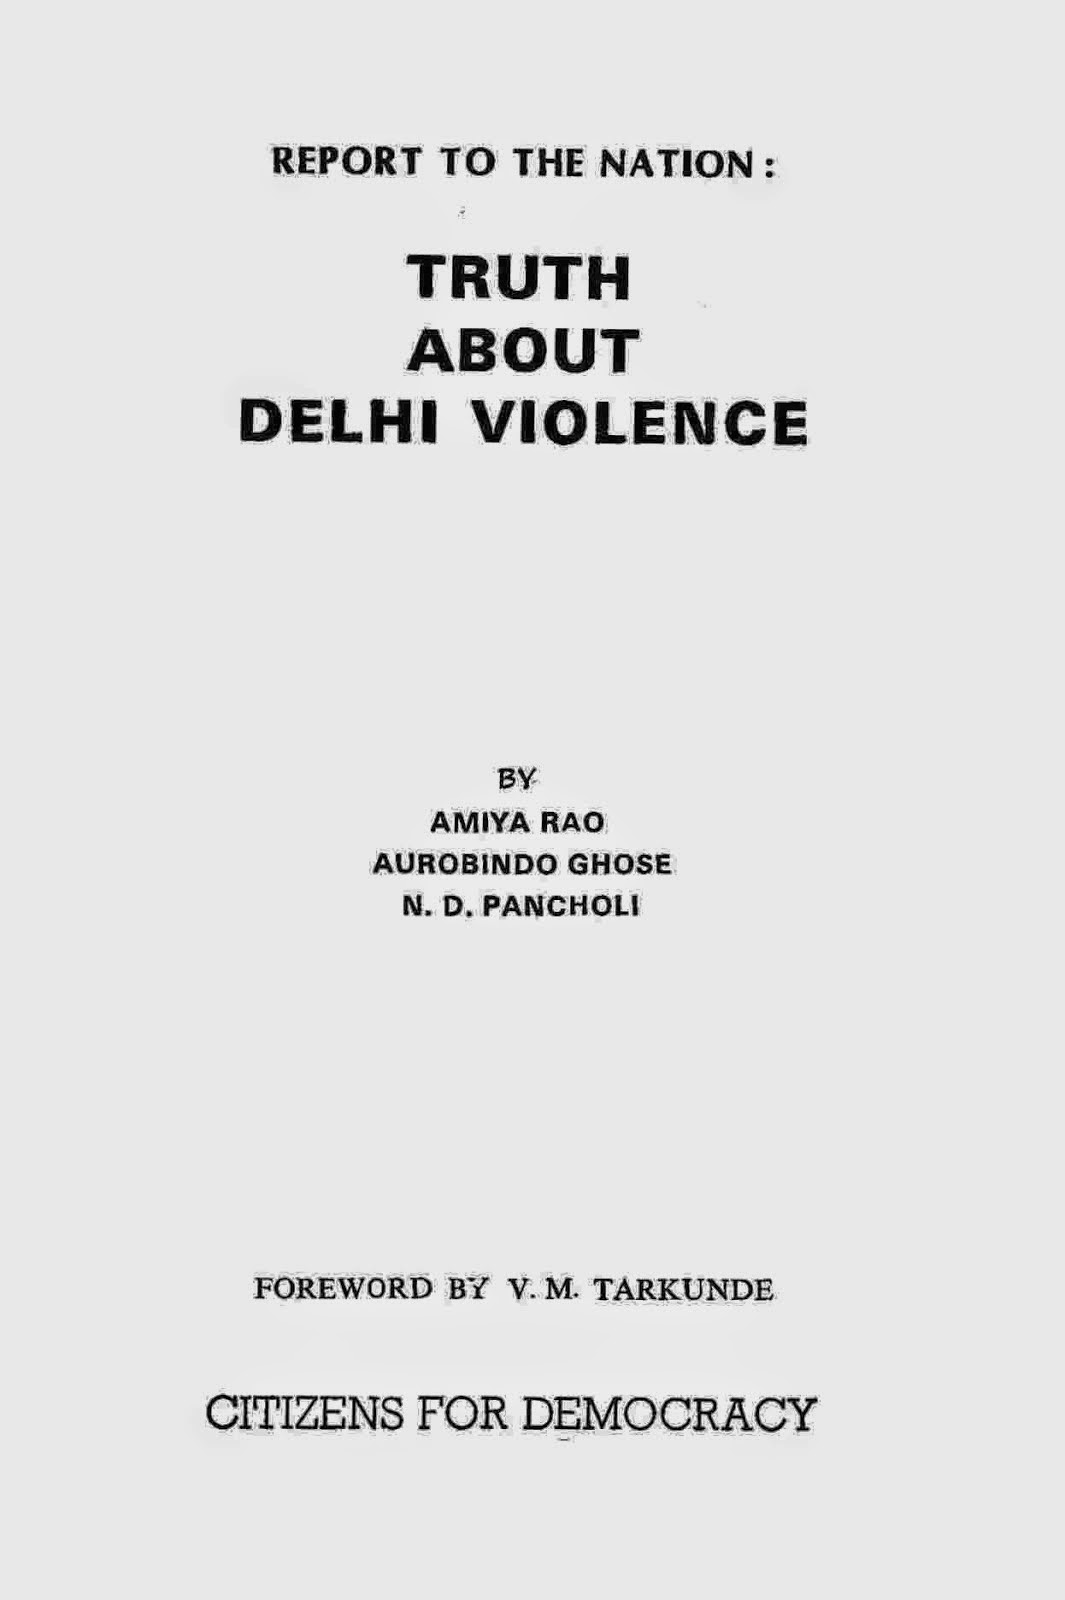 Report To The Nation - Truth About Delhi Violence